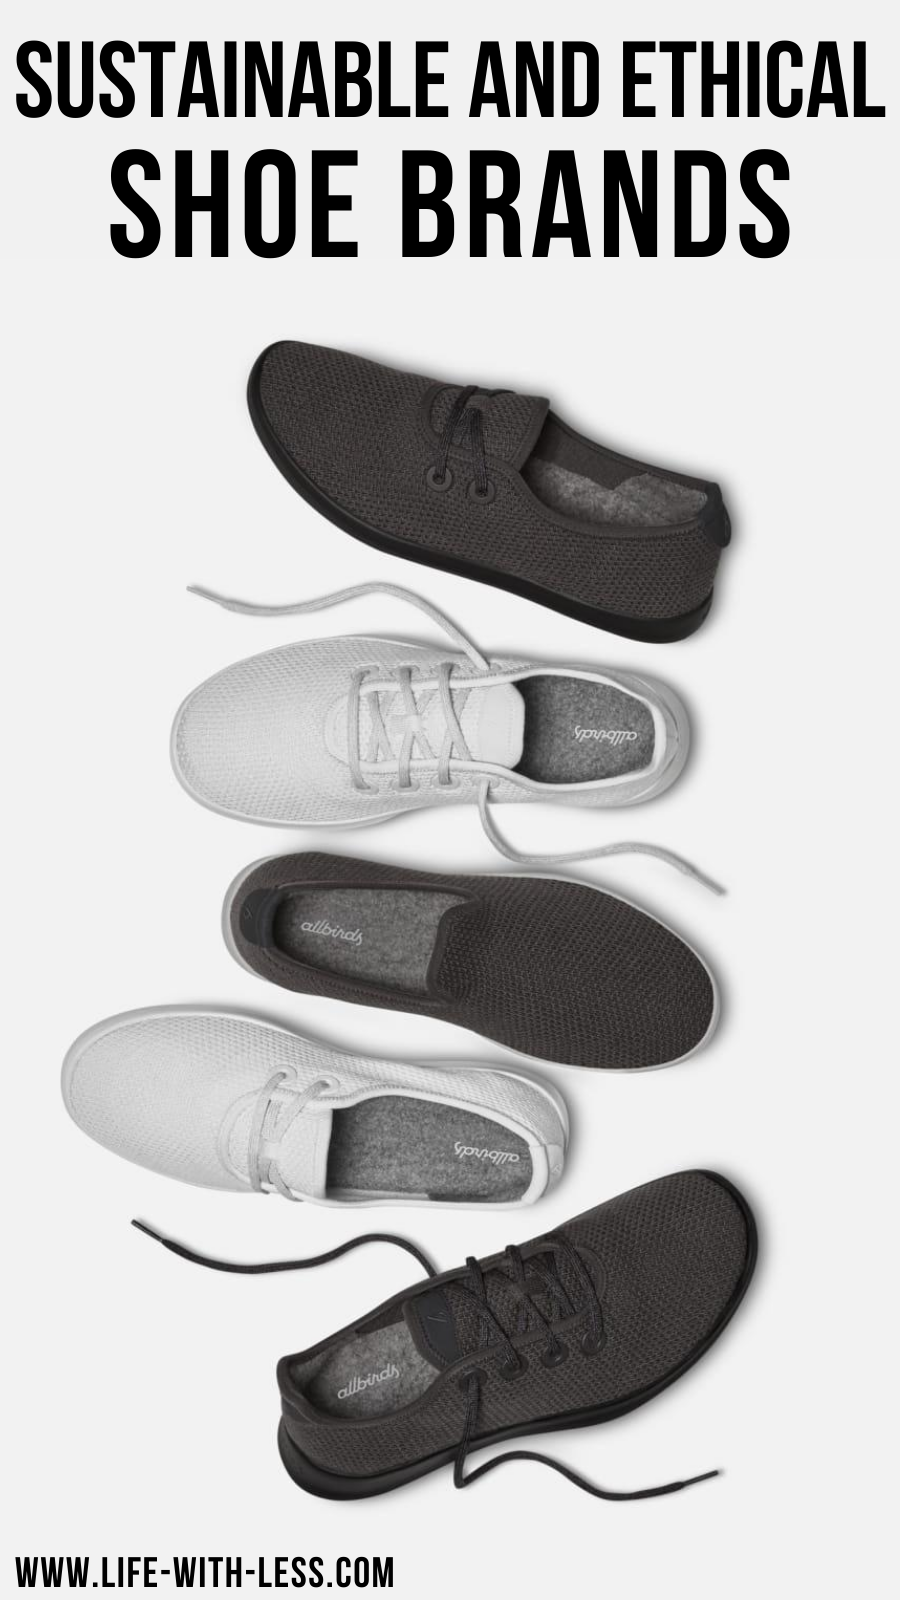 Ethical Shoe Brands to Support - Life